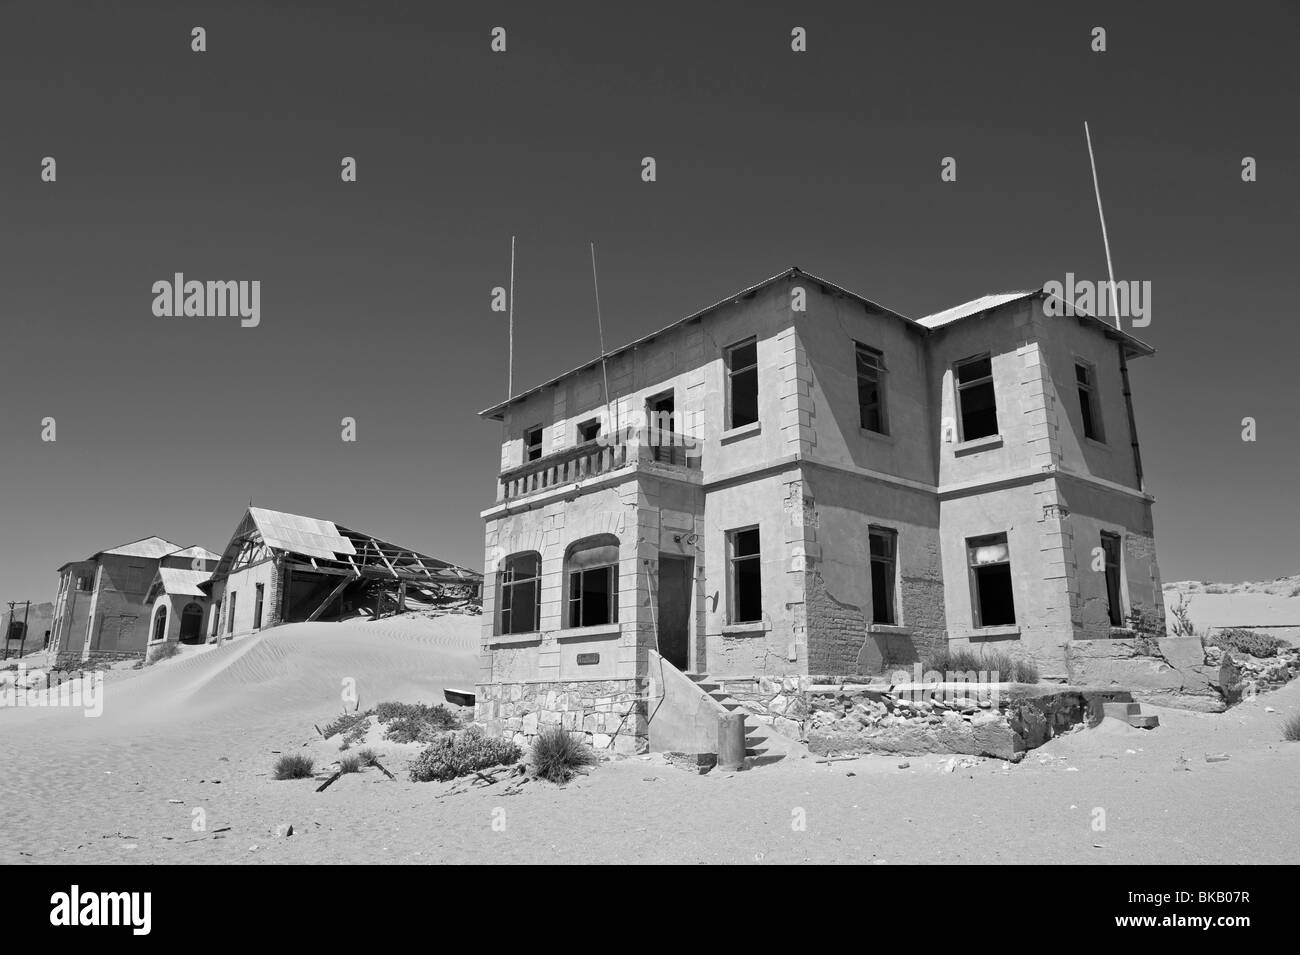 The Architekt or Architects House, Kolmanskop Ghost Town near Luderitz, Namibia - Stock Image